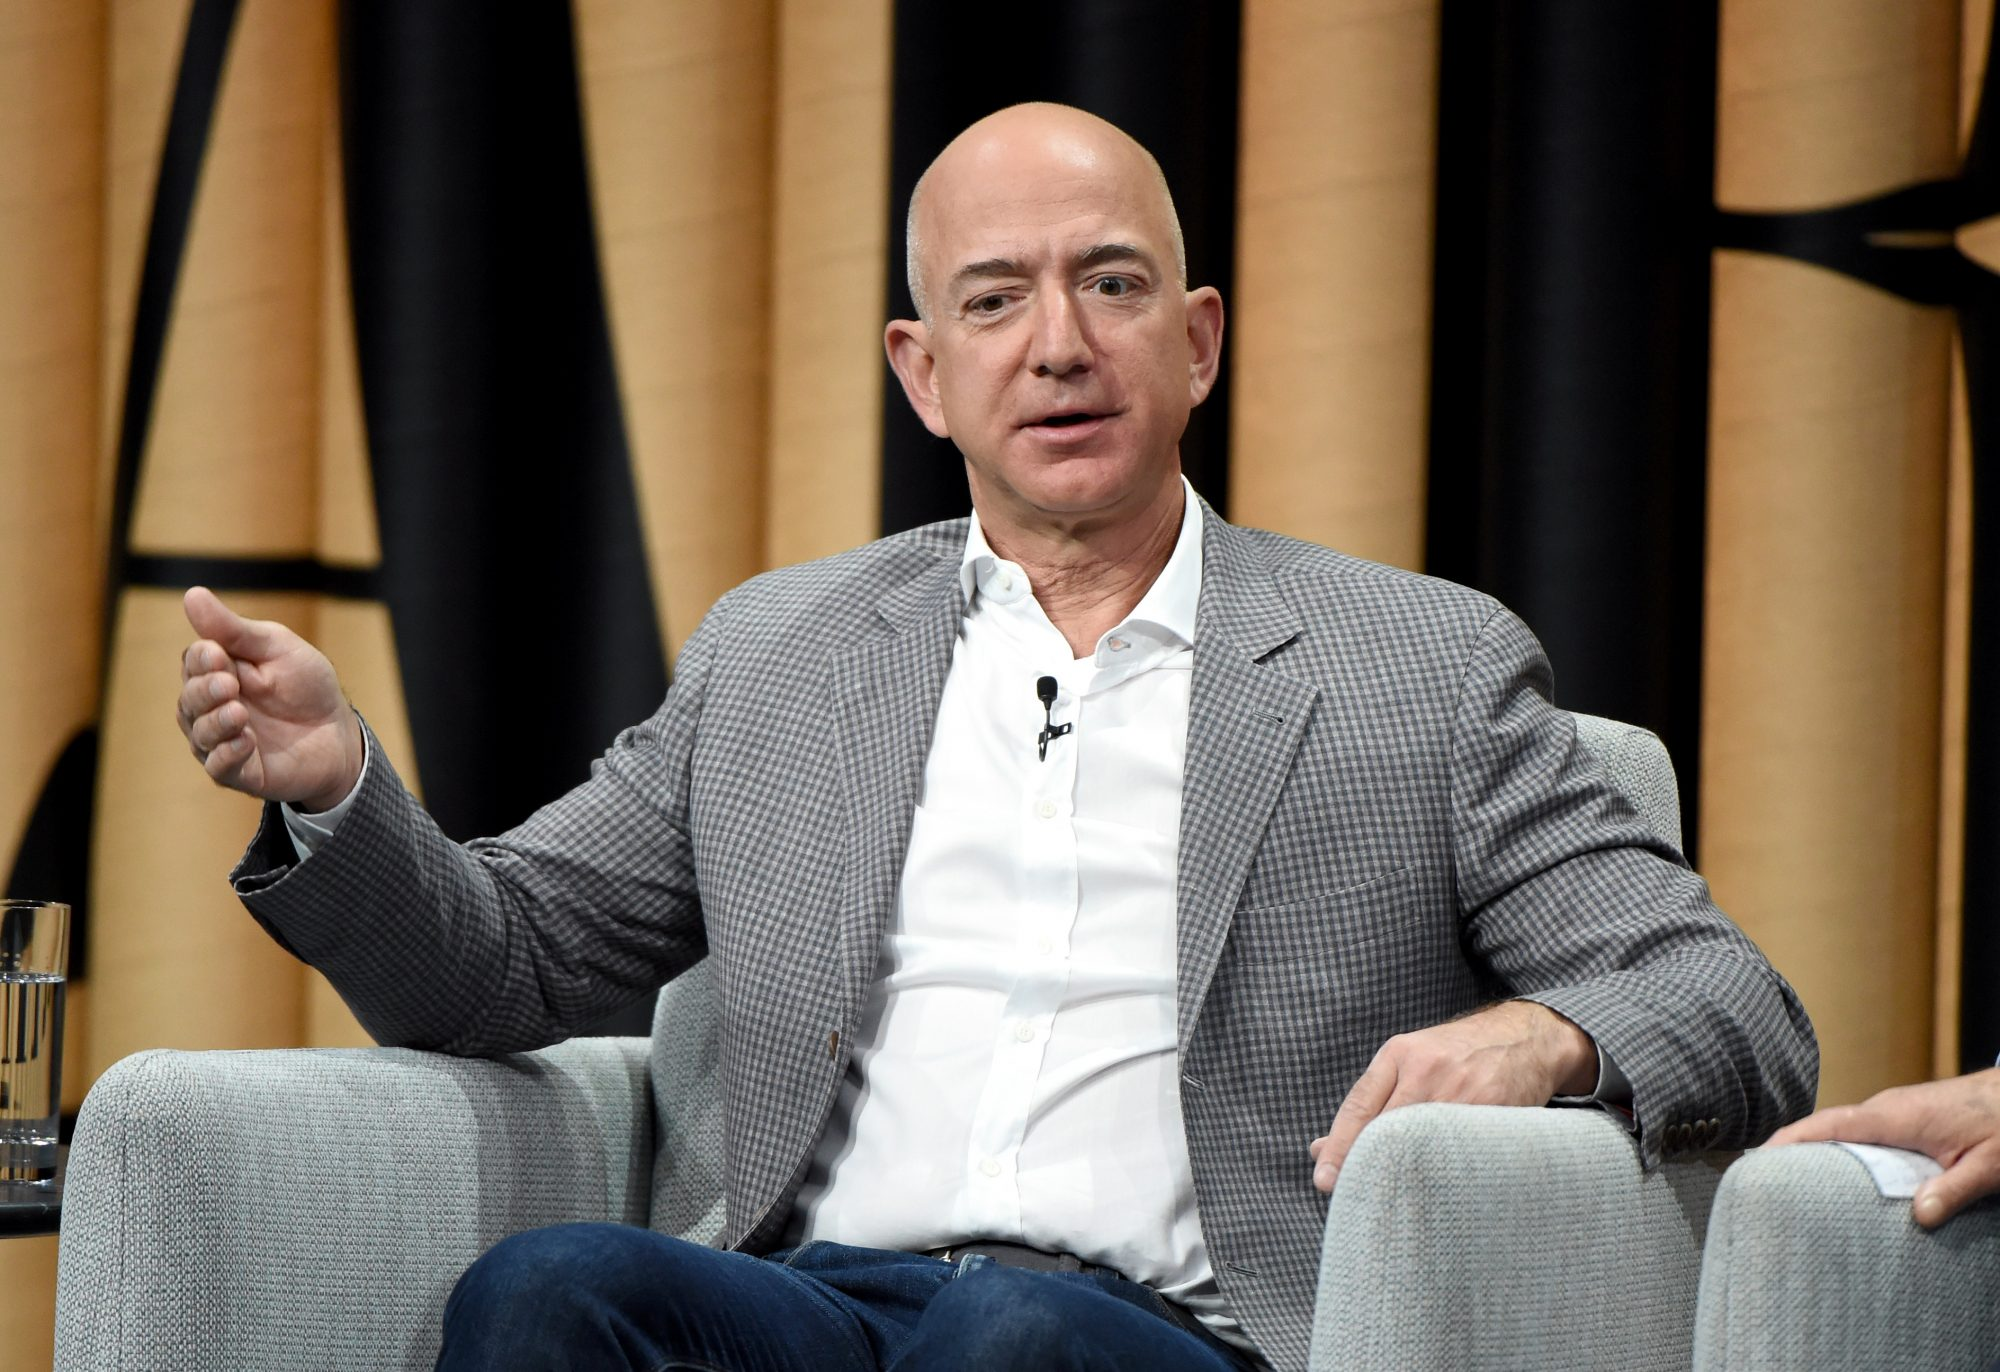 """Founder of Amazon, Jeff Bezos, speaks onstage during """"The Prime of Mr. Jeff Bezos"""" at the Vanity Fair New Establishment Summit at Yerba Buena Center for the Arts on October 20, 2016 in San Francisco, California."""